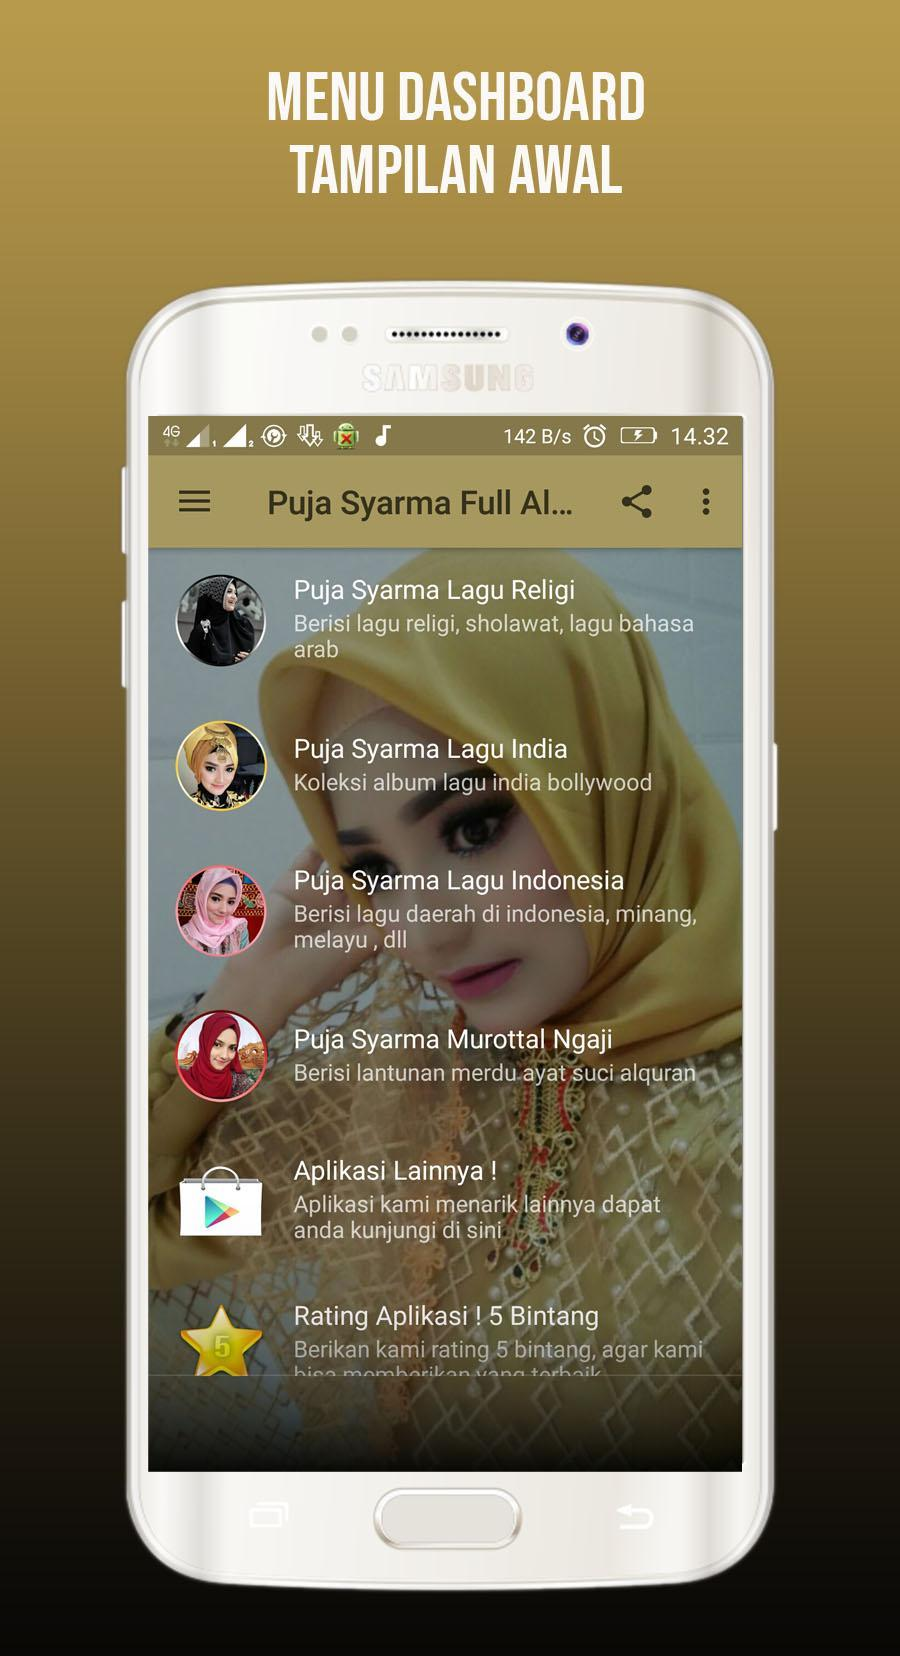 Puja Syarma Full Album Mp3 Offline for Android - APK Download